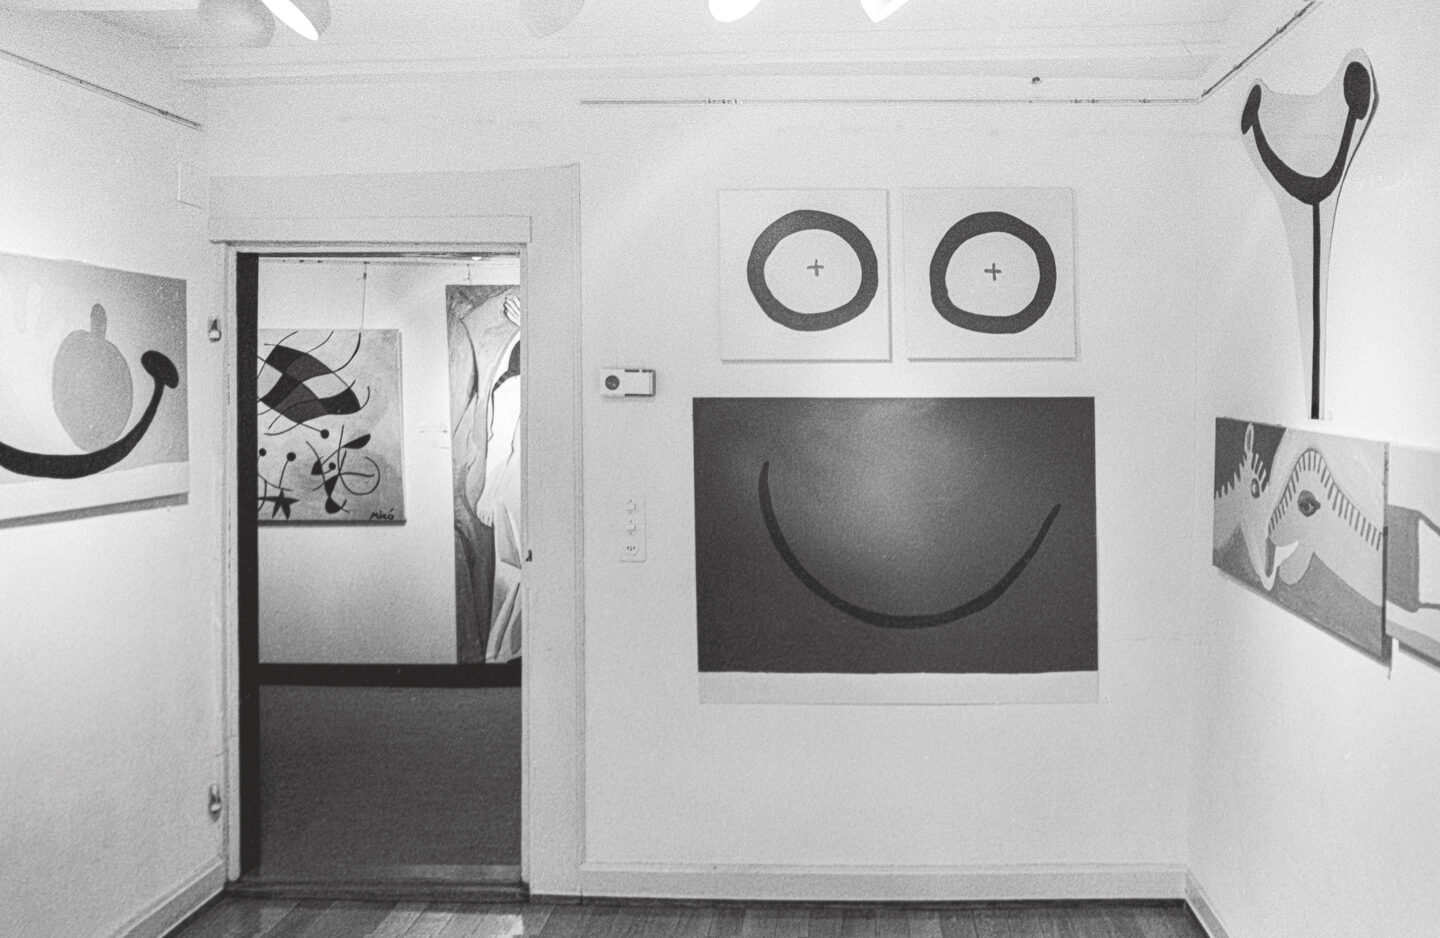 "Exhibition View Groupshow «Ausbruch & Rausch, Zurich 1975-1980, Women Art Punk; view on Klaudia Schifferle ""Immernimmer + Immerschlimmer"", Die Lachstange"" and ""Die Tiere die Türe"" and Sergio Gallis studies of Juan Miró and Pablo Picasso / Photo: Dieter Hall, 1980» at Strauhof, Zurich, 2020"